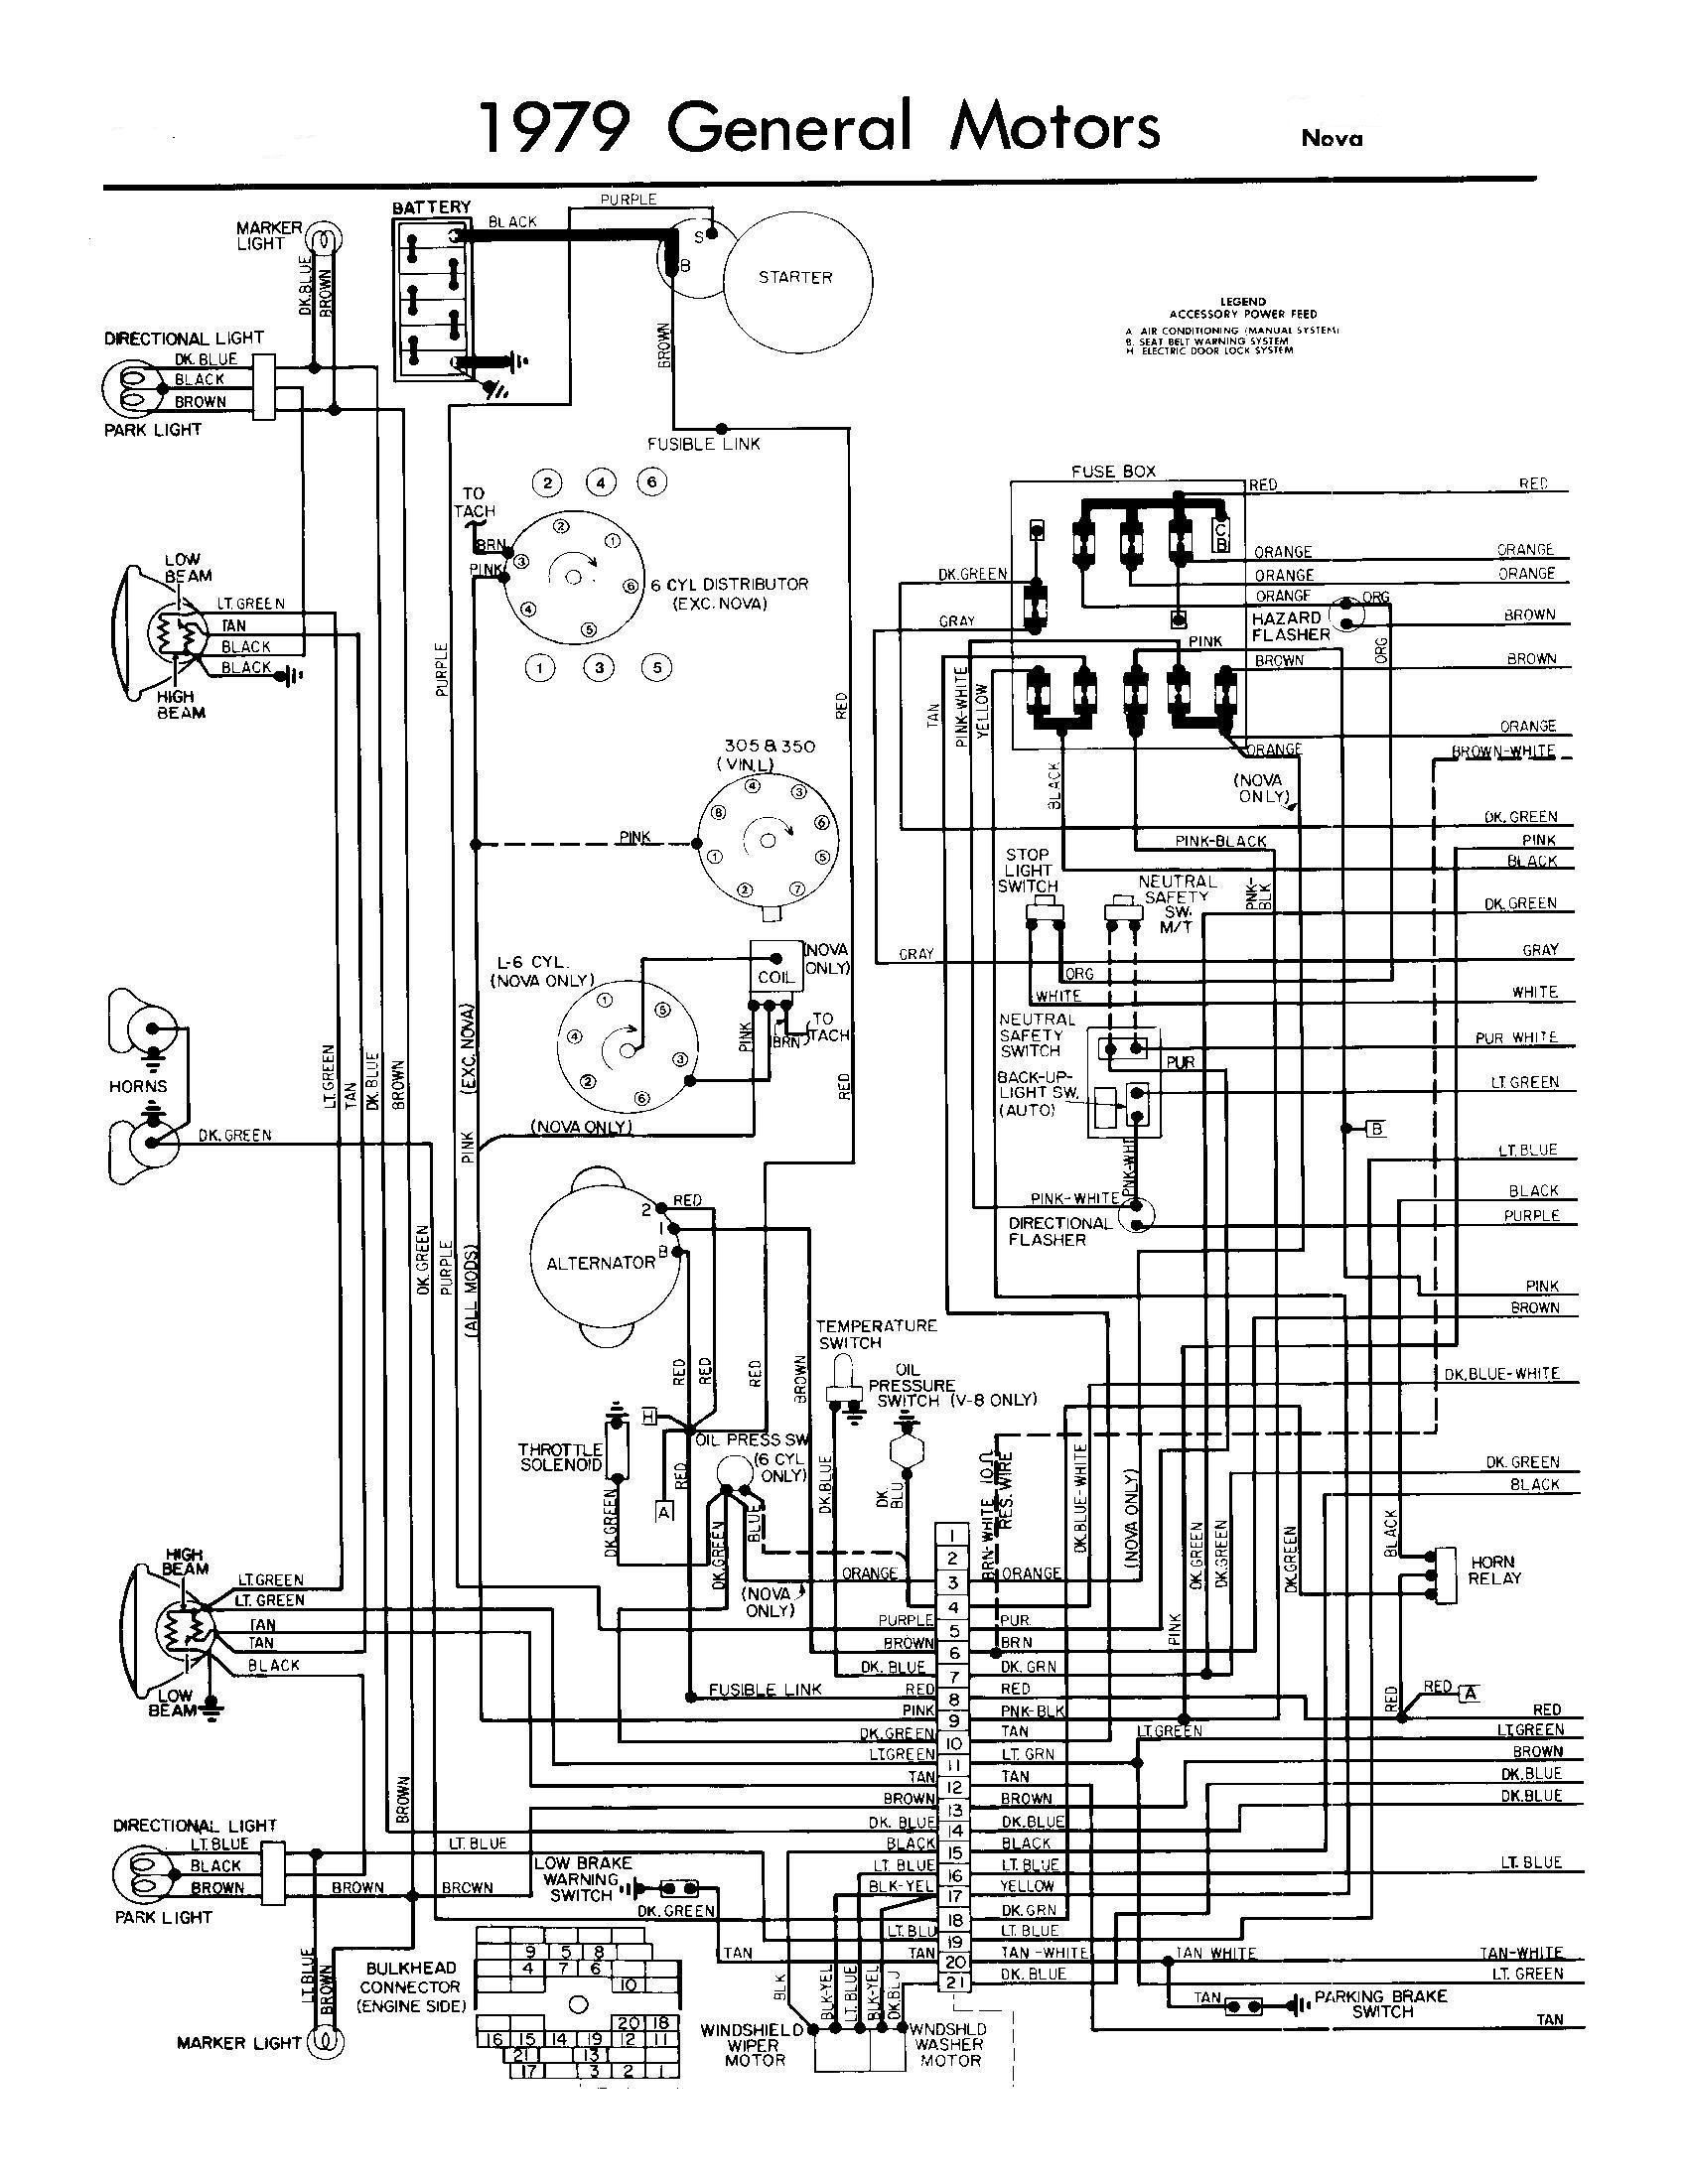 Wiring Schematics For 1994 C K - Wiring Diagram •